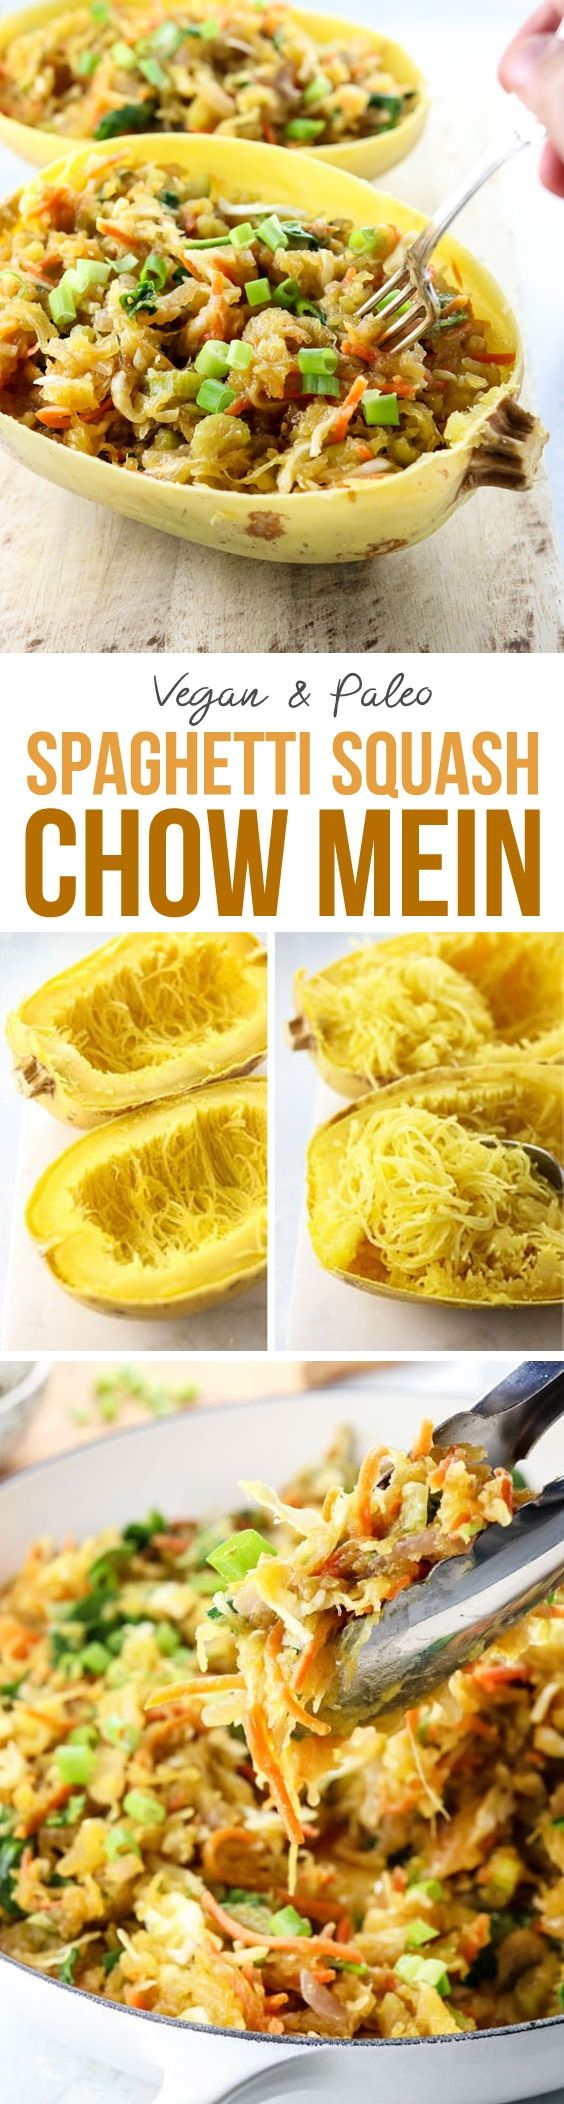 """Spaghetti Squash Chow Mein makes an easy vegan or vegetarian dinner. It's made with low-carb """"noodles"""" making it perfect for gluten-free, grain-free, and paleo diets. Feel free to add your favorite protein to customize it!  via @detoxinistagmail.com"""